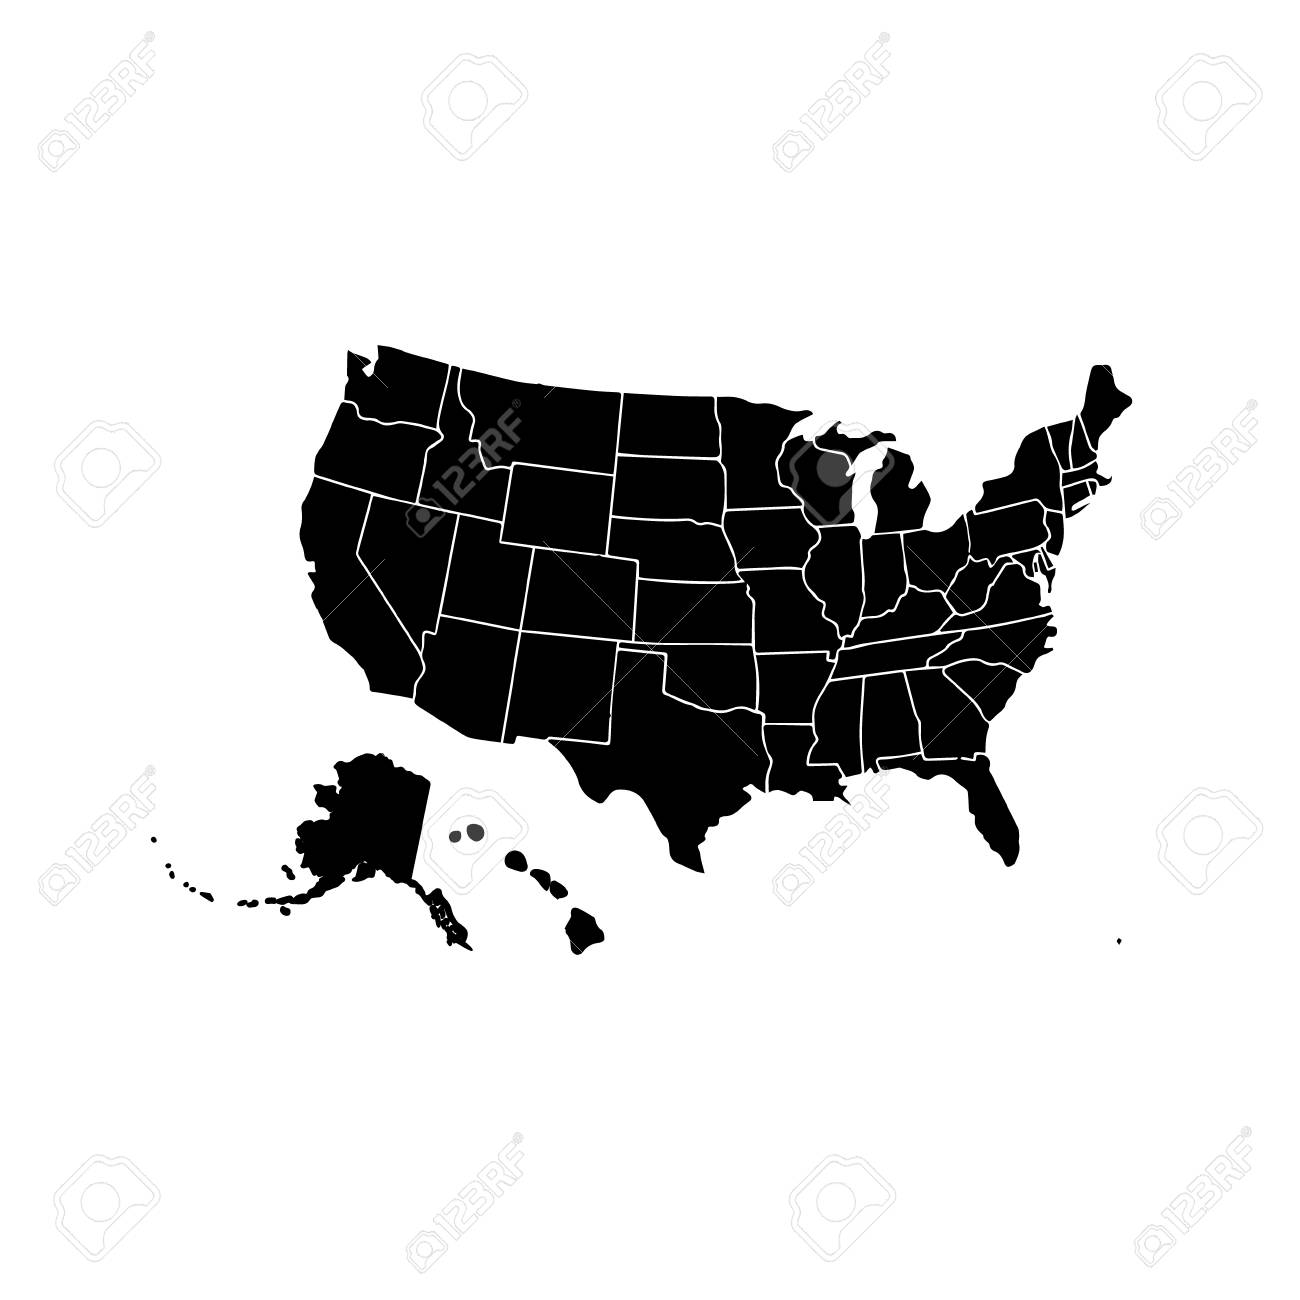 Usa Map Blank Template on usa map templates microsoft, snowman blank template, usa map printable, usa map fill state template, new york blank template, united states map template, place value chart blank template, shapes blank template, keyboard blank template, usa map powerpoint slide, usa map outline, star blank template, united states of america template, usa map editable template, usa map roadways, usa map pdf, 50 states blank template, usa map ppt template, money blank template, turkey blank template,